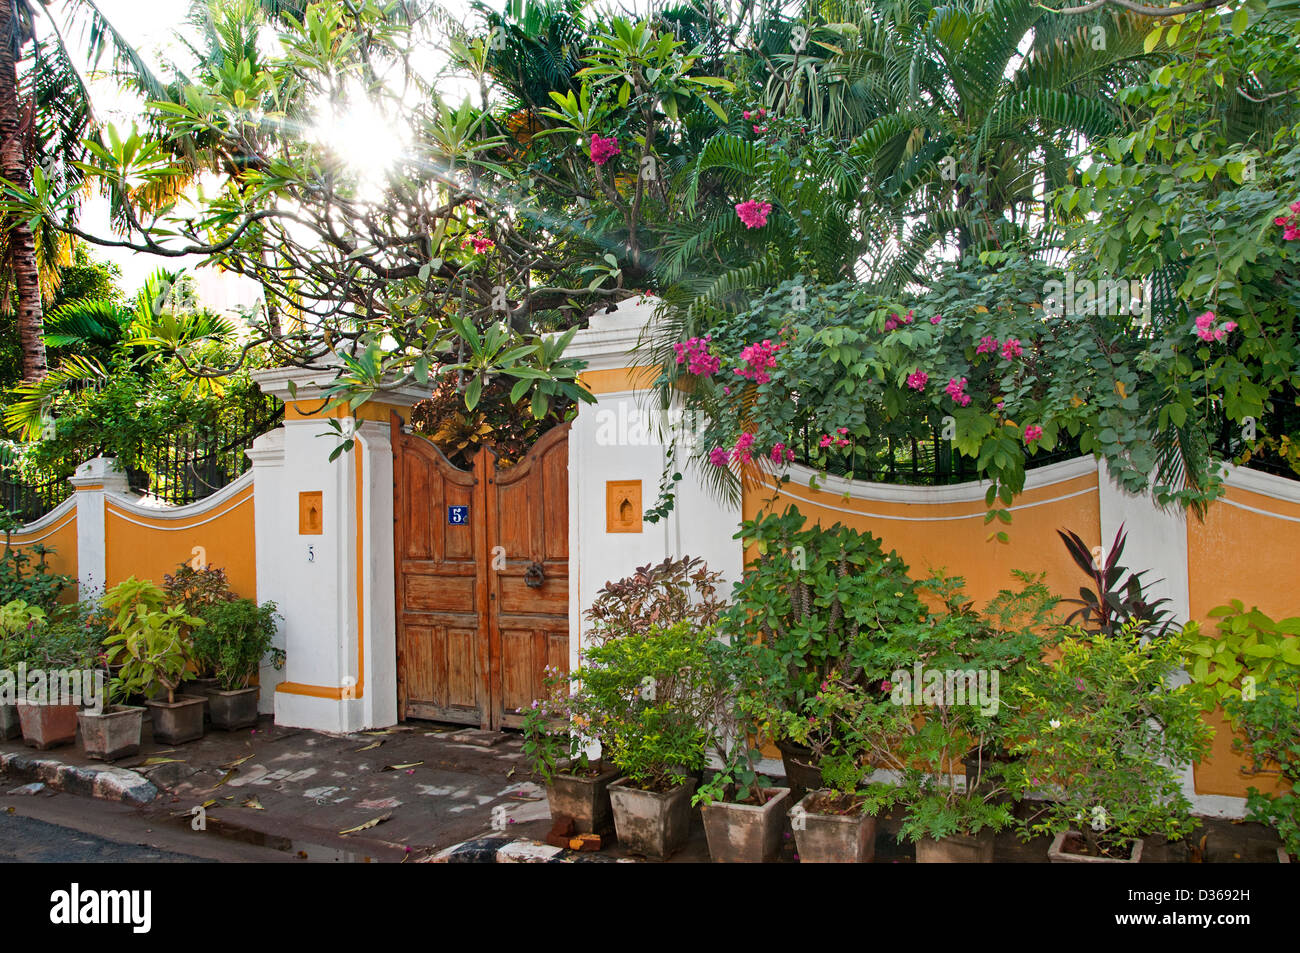 Puducherry Stock Photos Images Alamy House Wiring Books In Tamil With Garden Pondicherry India Nadu Image